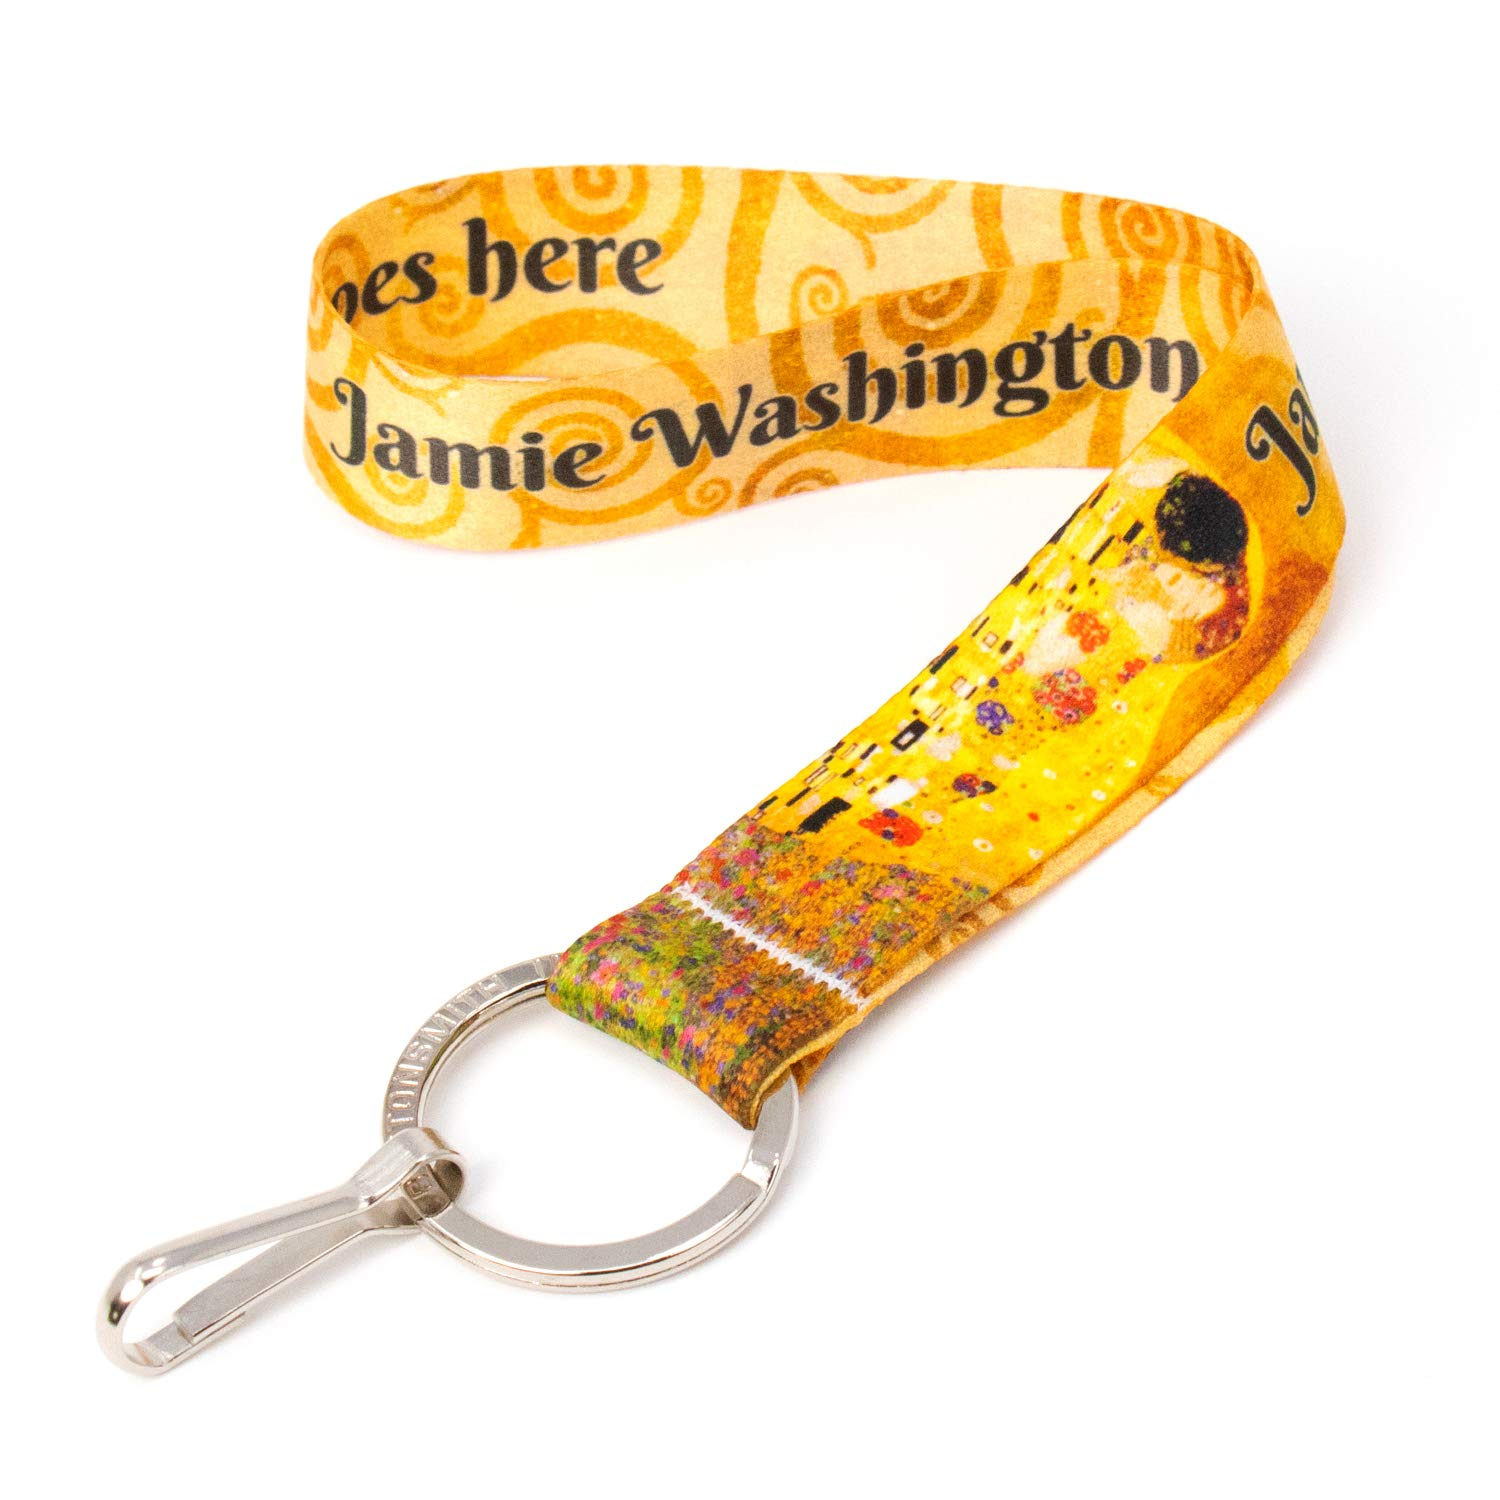 Buttonsmith Custom Wristlet Lanyard - Customize with Your Name - Short Length with Flat Ring and Clip - Made in The USA by Buttonsmith